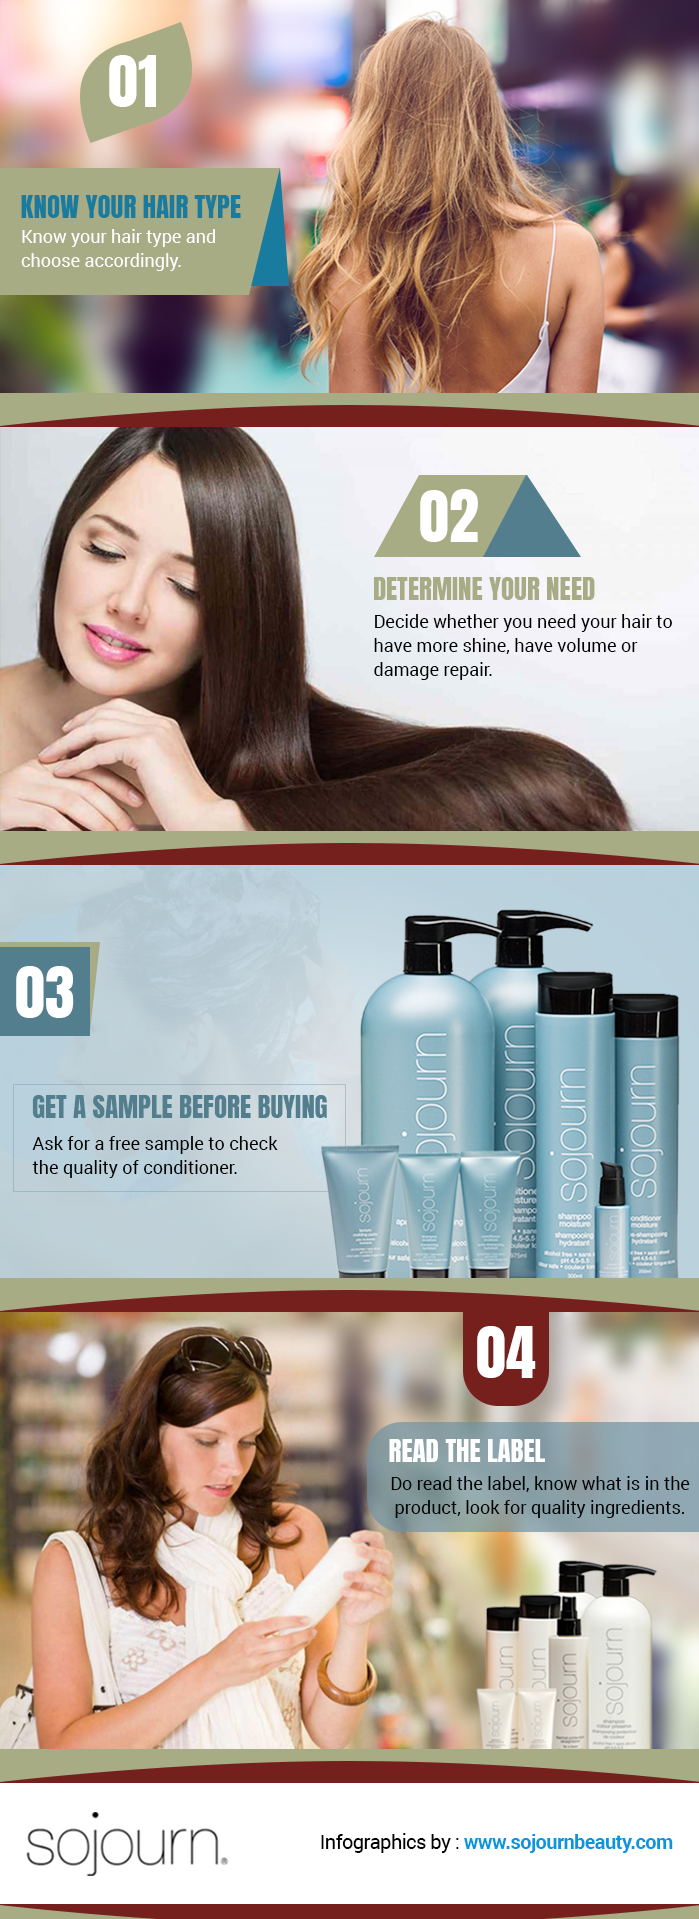 Tips to follow to buy ideal hair conditioner